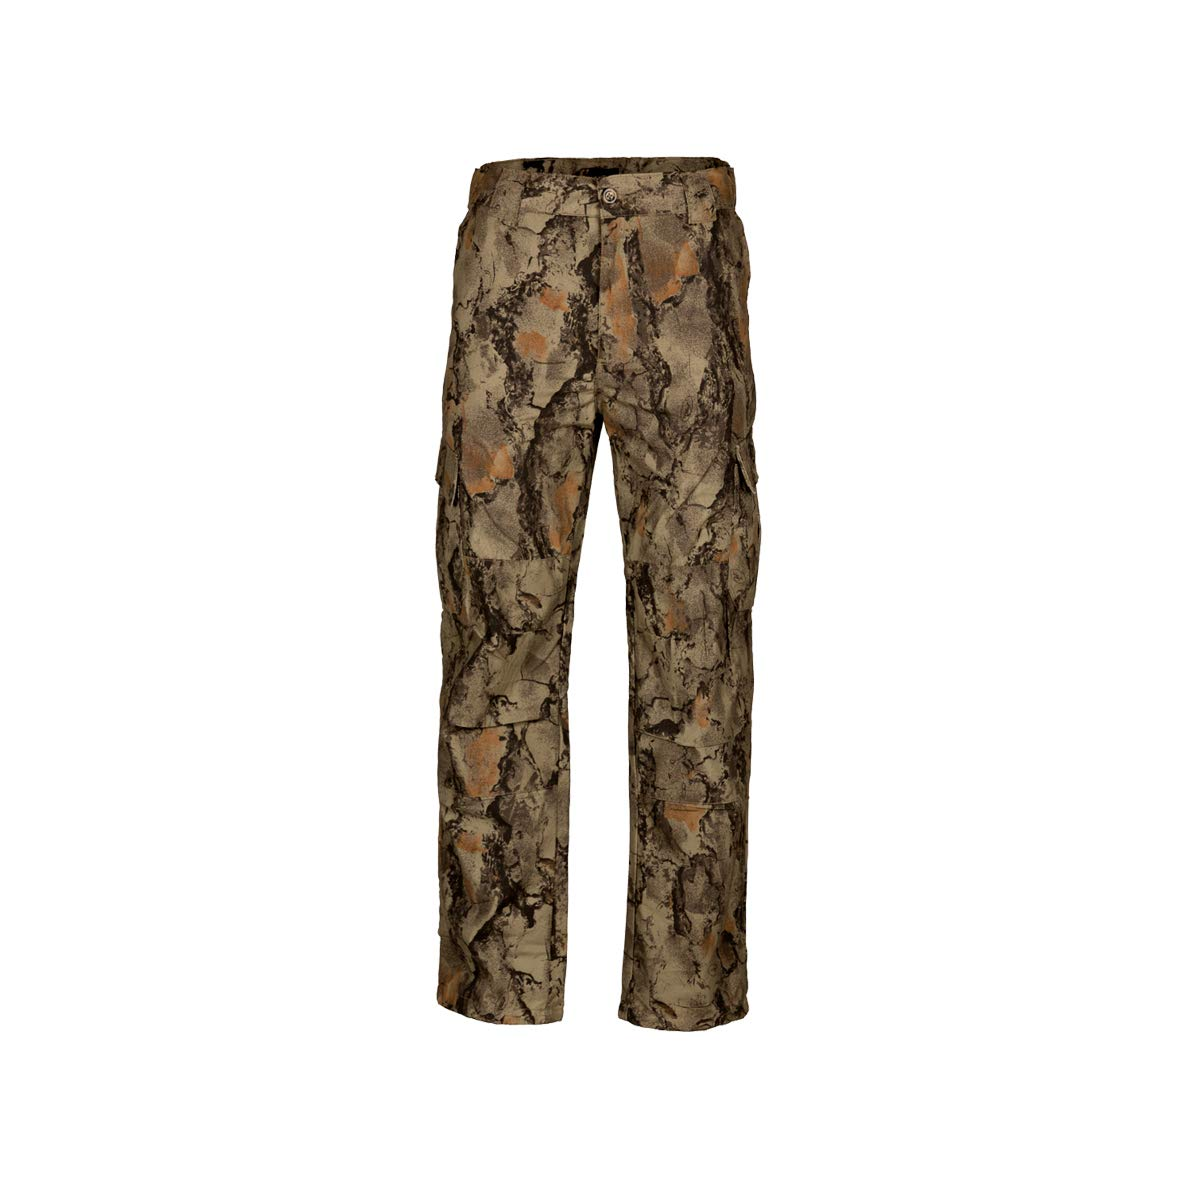 Natural Gear 6 Pocket Tactical Fatigue Pant for Men and Women, Lightweight Hunting Pants, Made with Cotton/Poly Ripstop Material (XX-Large-Long) by Natural Gear